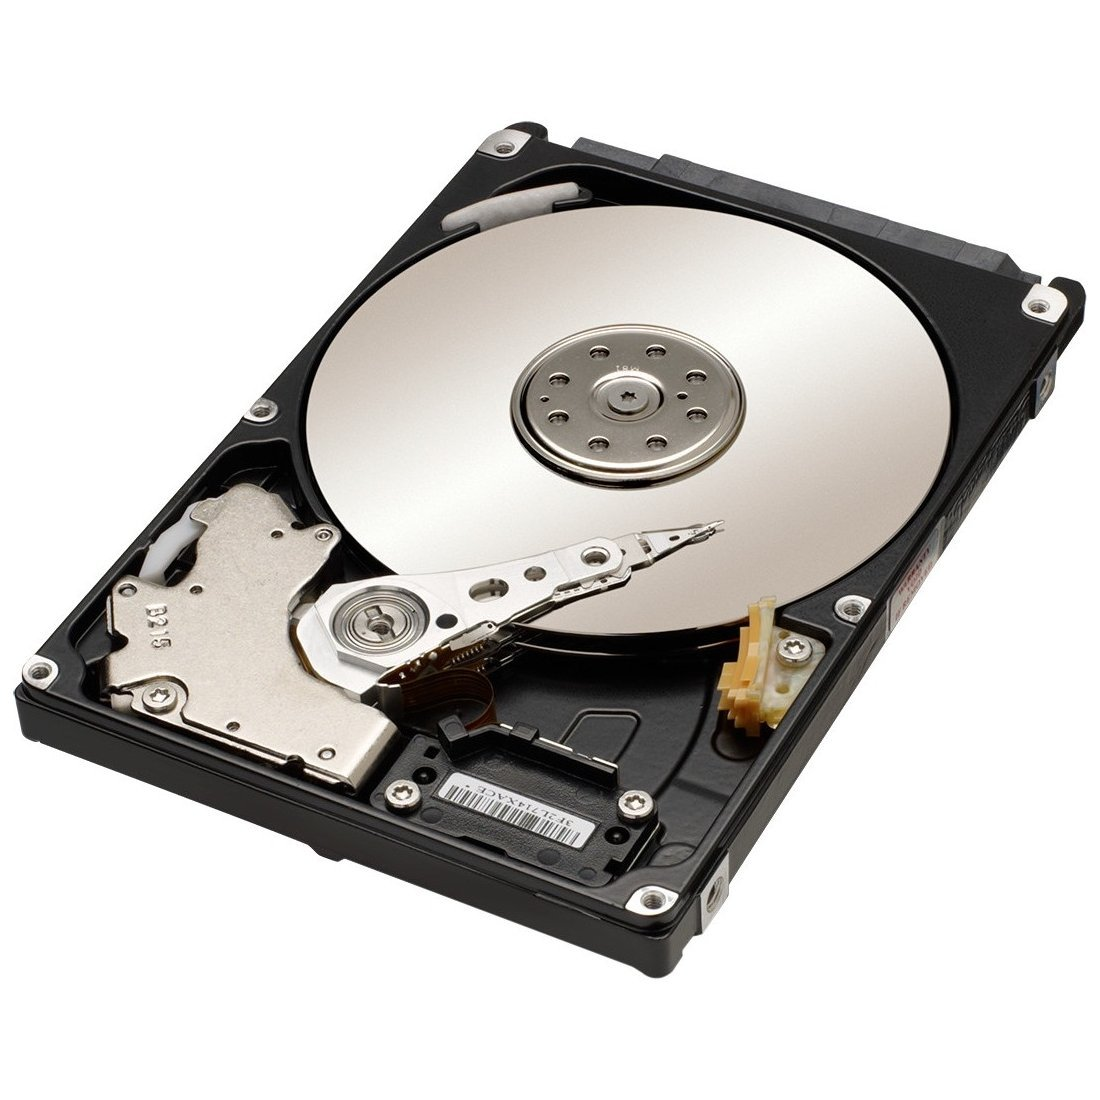 Samsung Seagate 2TB Laptop HDD SATA III 2.5-Inch Internal Bare Drive 9.5MM (ST2000LM003)